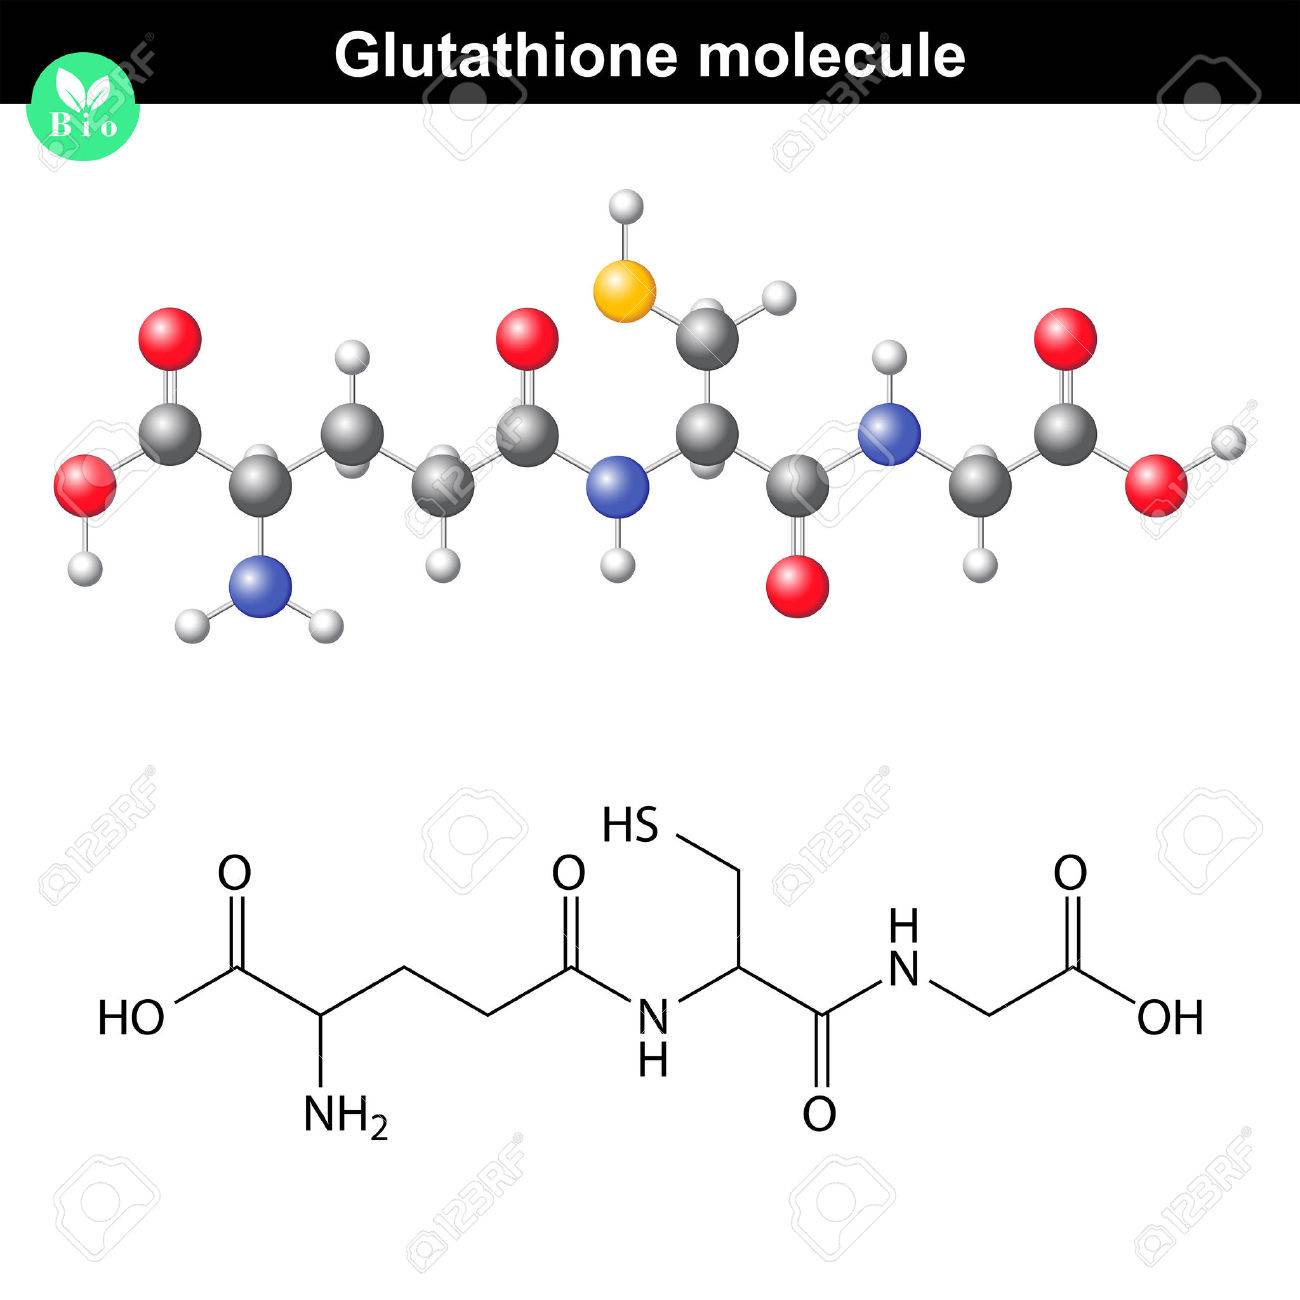 Glutathione chemical molecule - antioxidant and regulator and indicator of cell oxidative stress, 2d and 3d vector models, eps 8 - 47554251